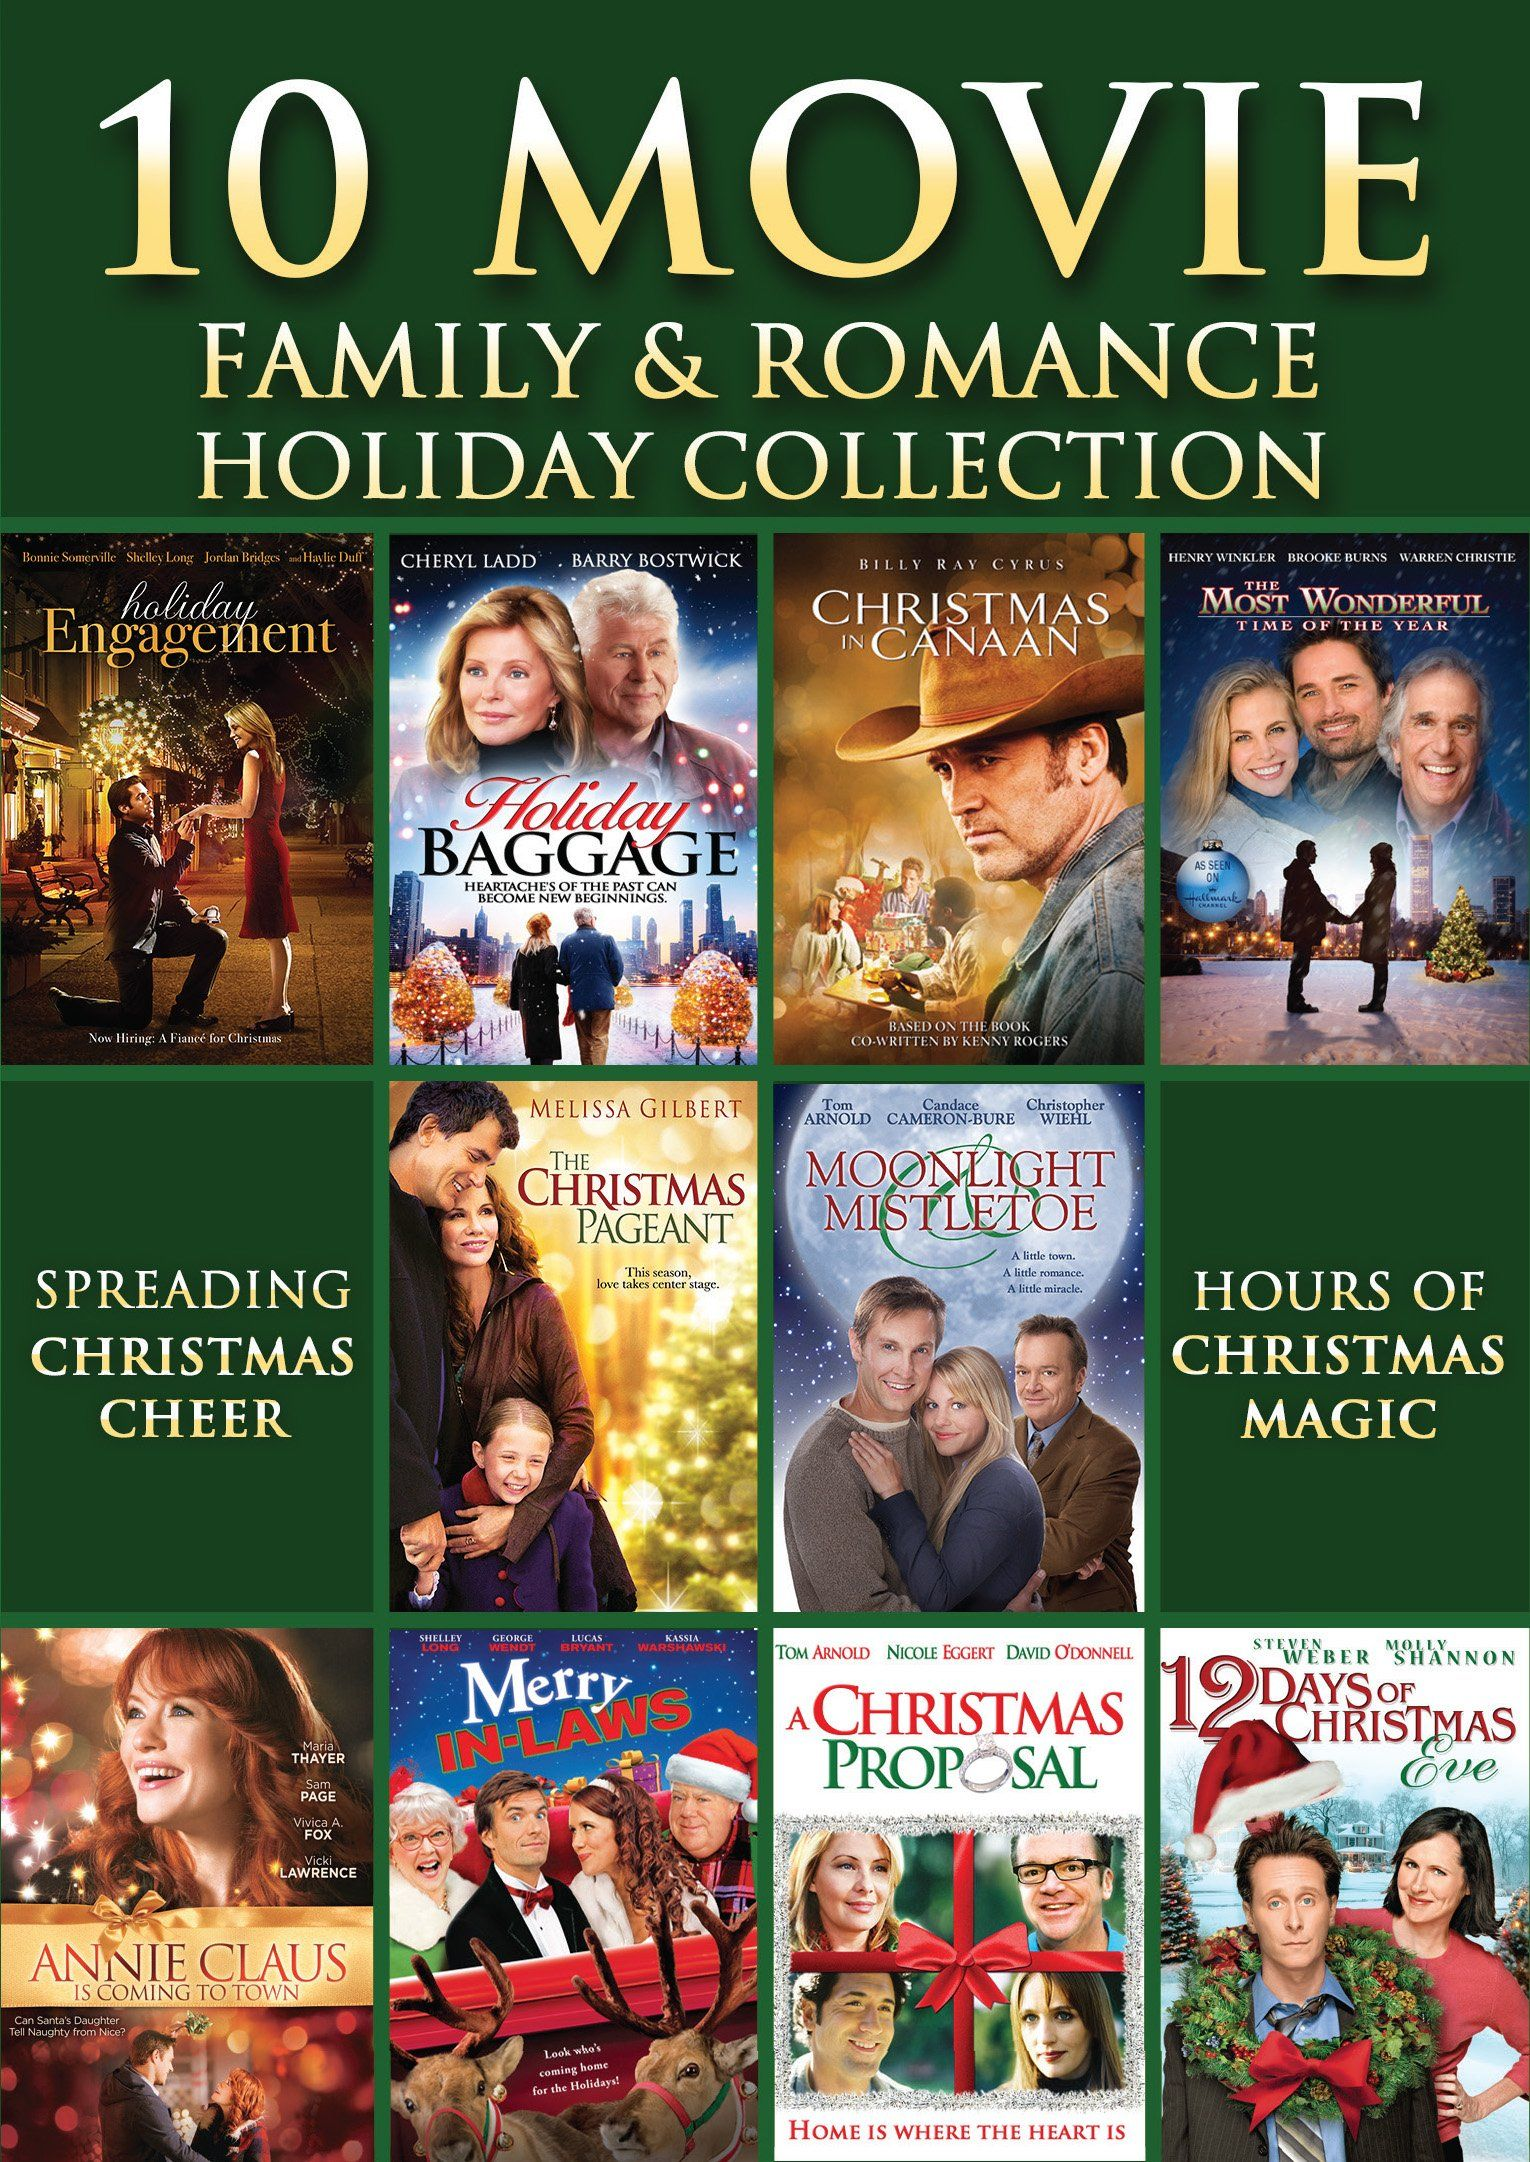 5 KATHRYN SHAY HARLEQUIN ROMANCE FAMILY CHRISTMAS LEGACY ...